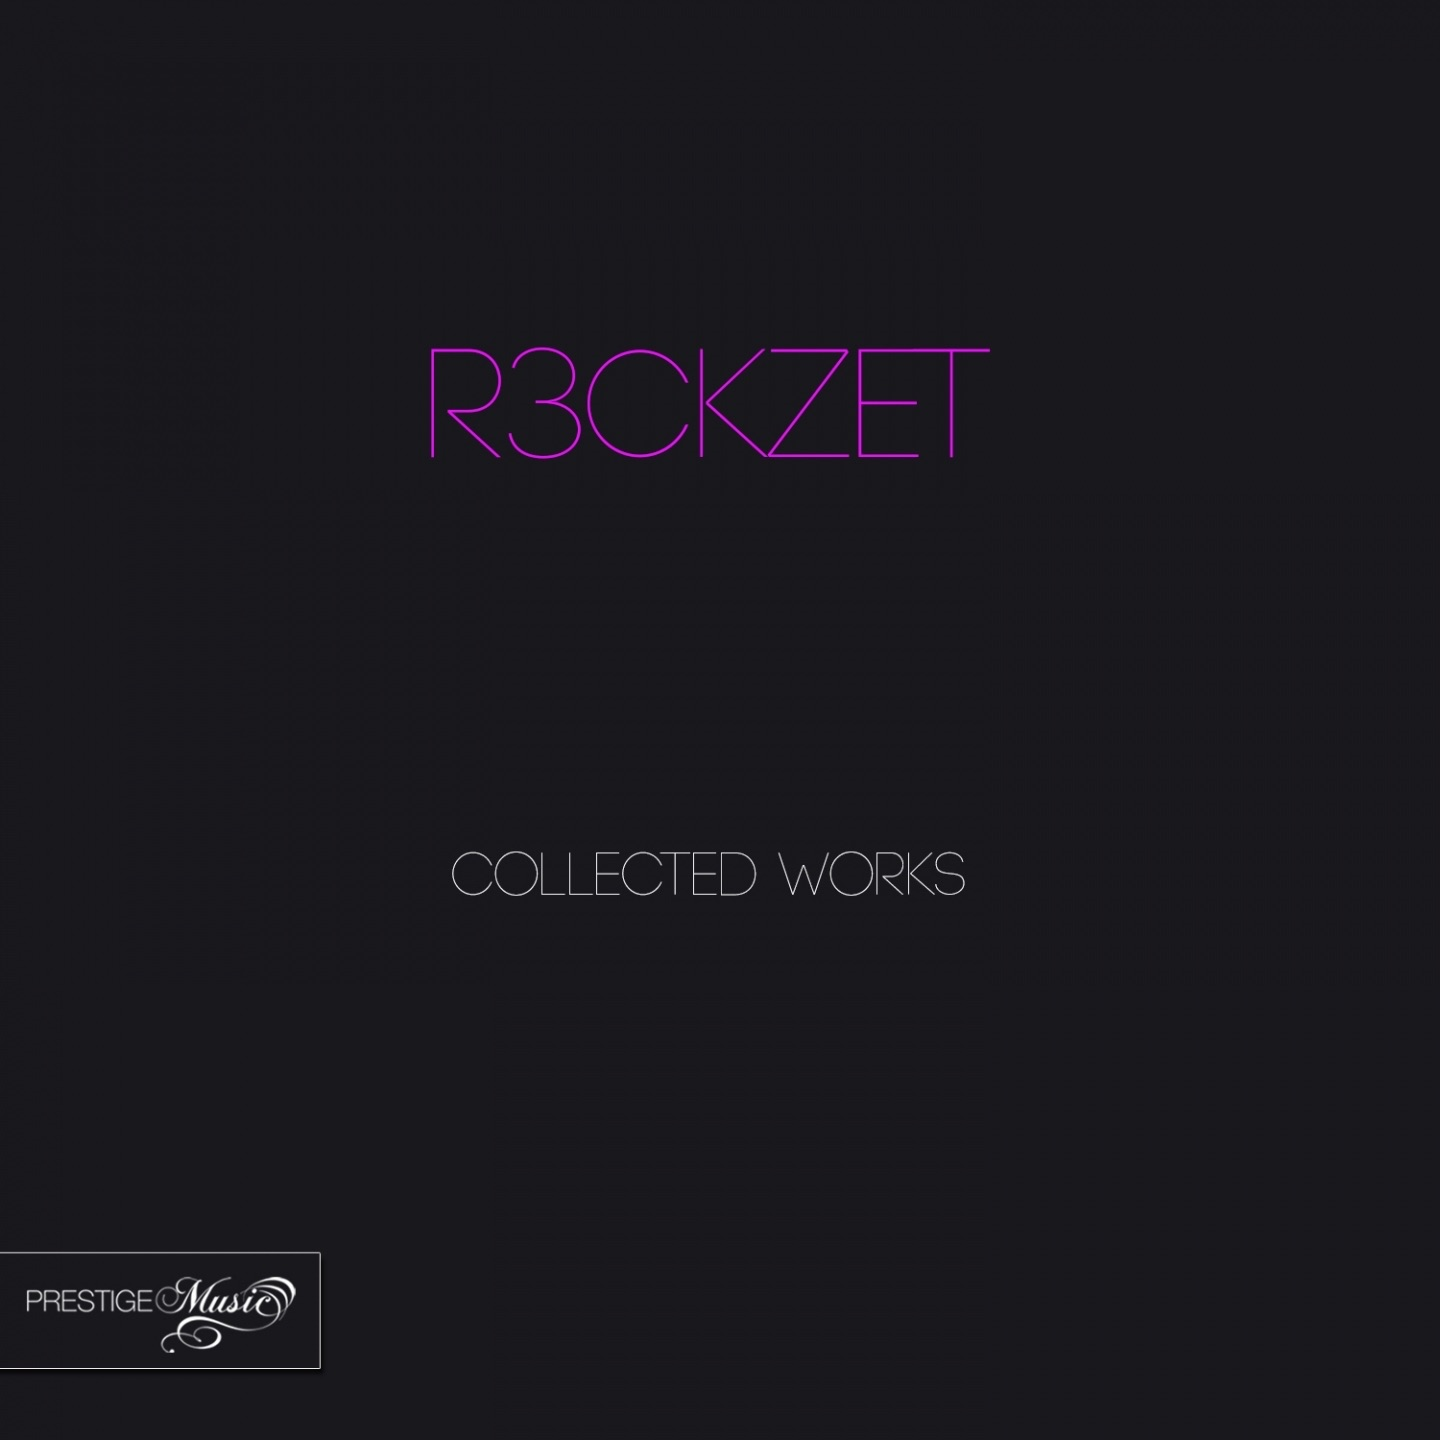 R3ckzet Collected Works - Single